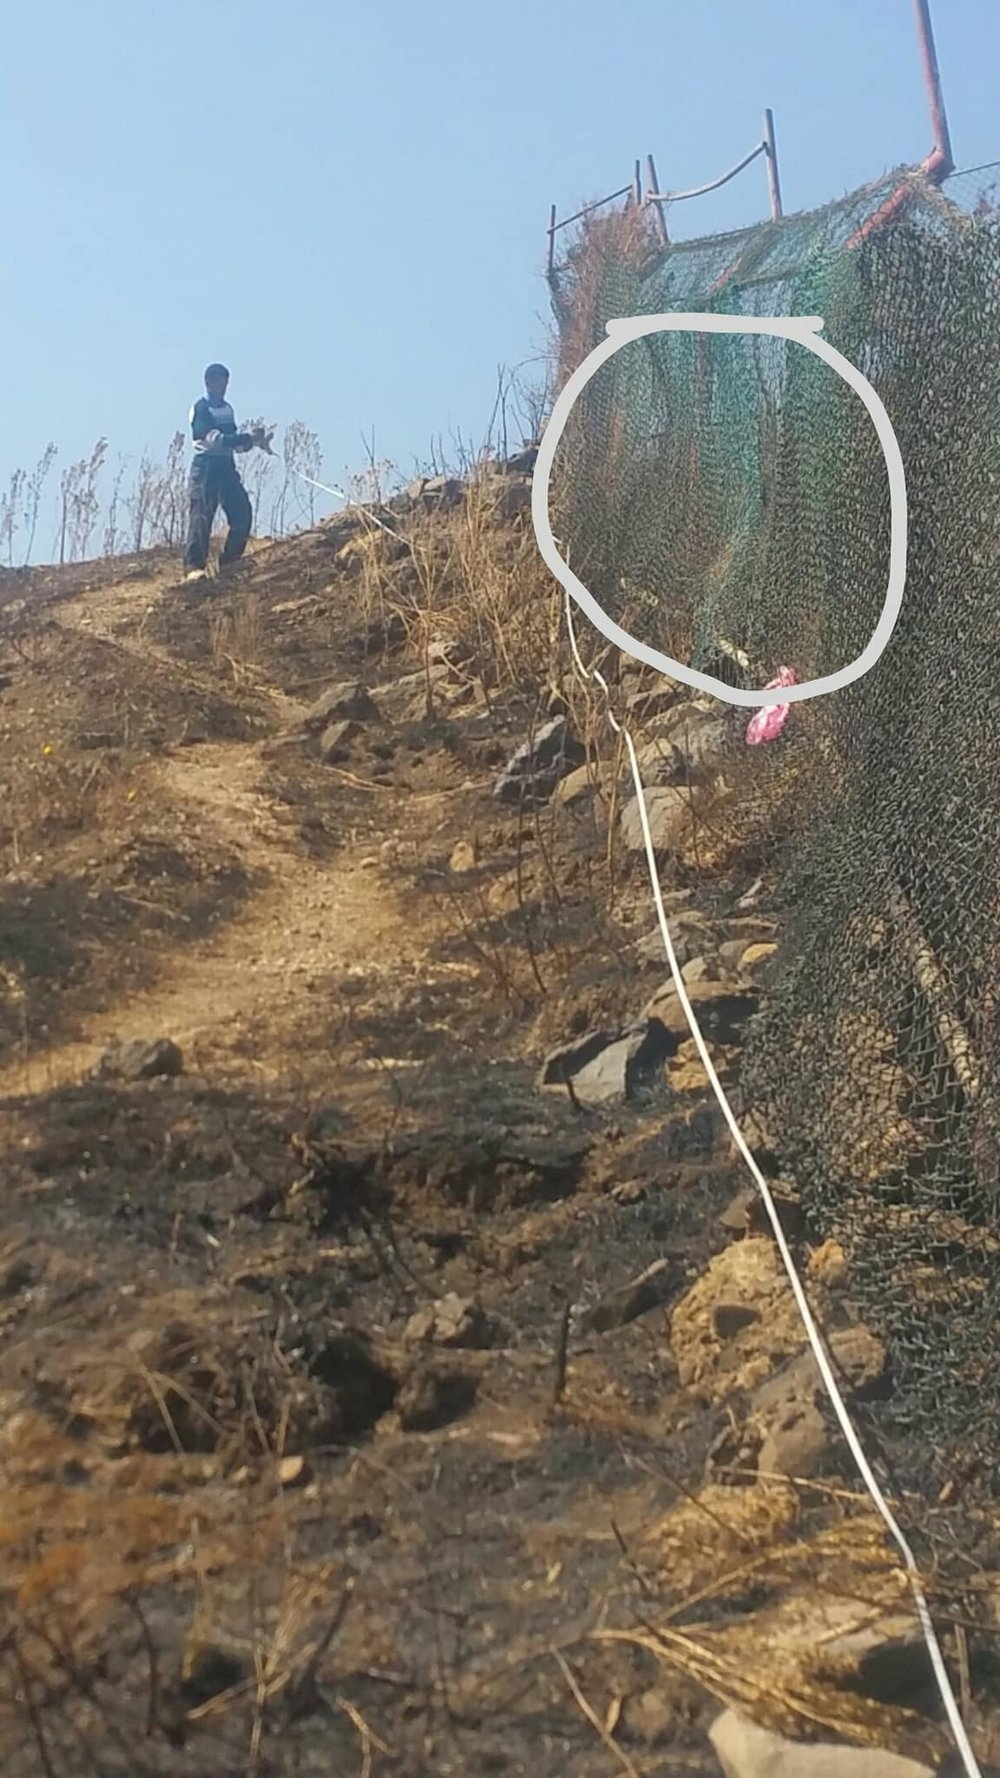 IBB ZOO 18 FEB 2018  open range fencing repair project by OWAP AR WITH HAITHAM AL BURHLAL MEASURING TODAY.jpg